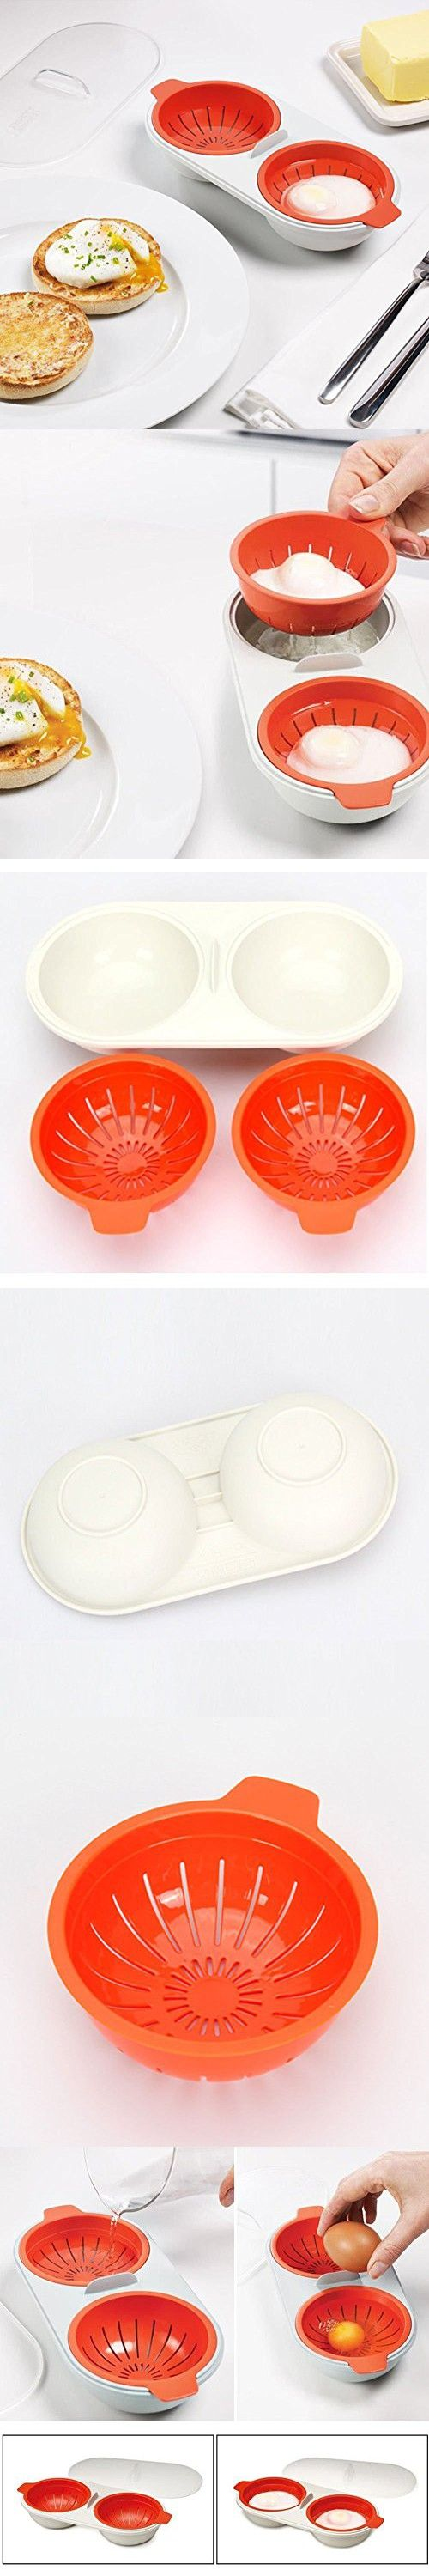 TOPCHANCES Silicone Microwave Double Egg Poacher Red